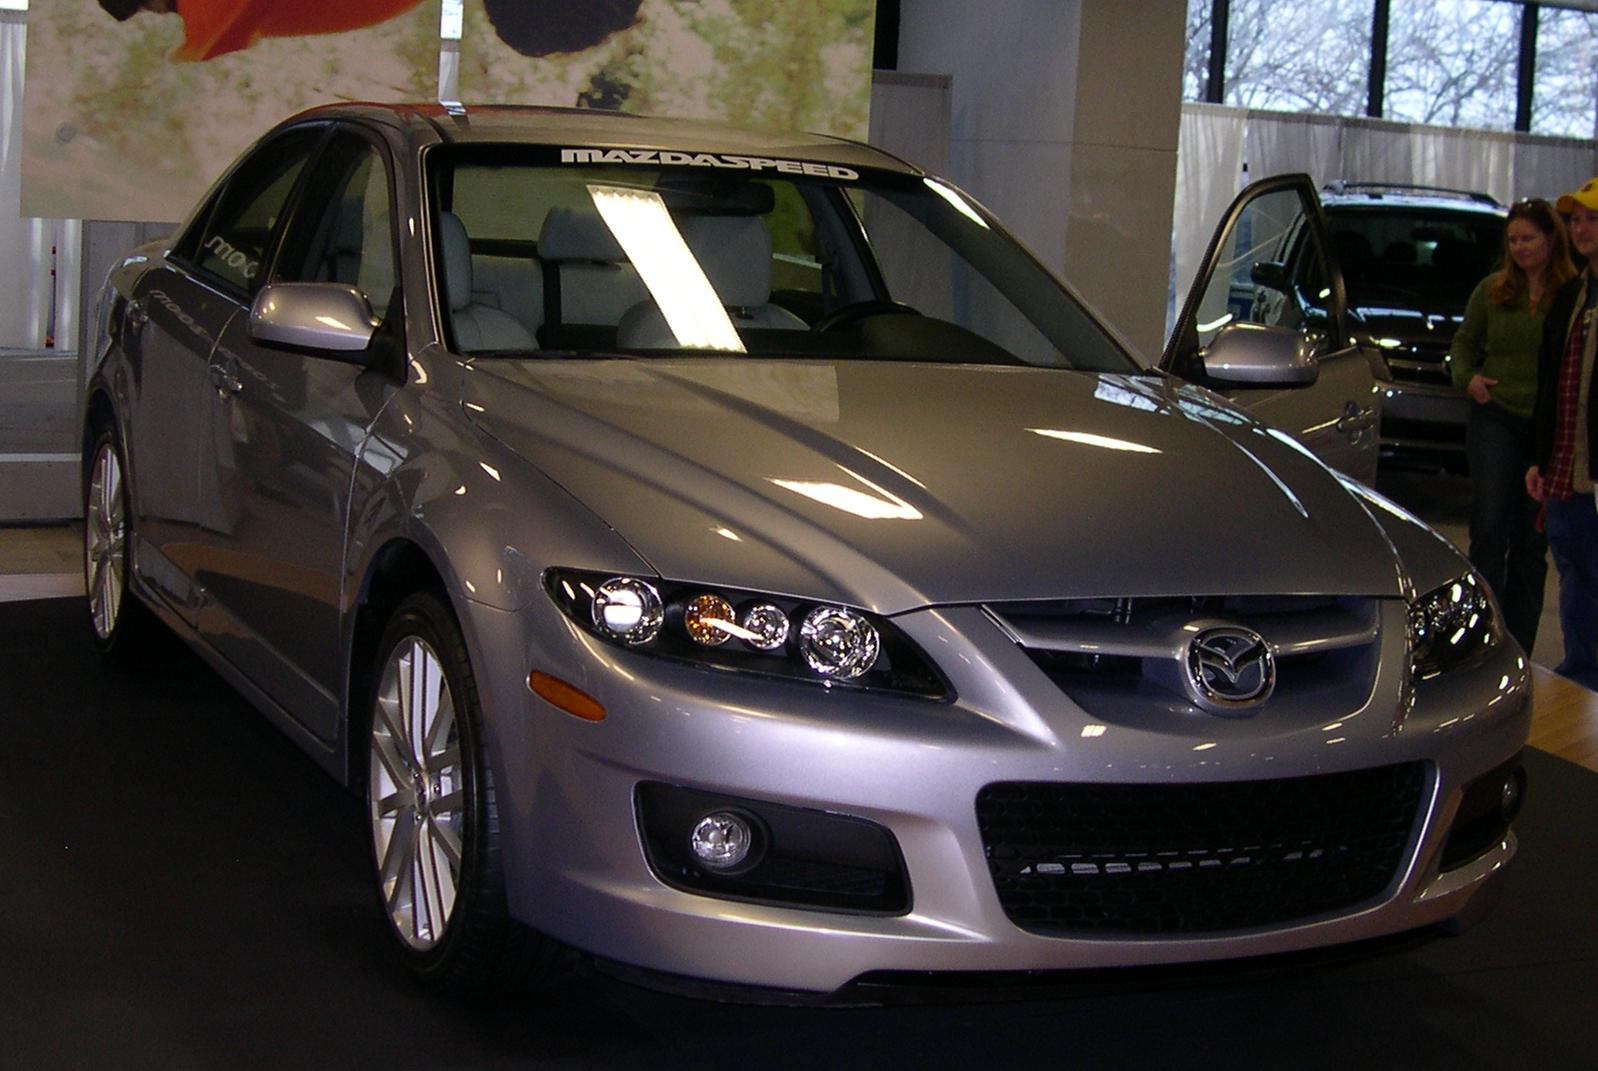 2006 Mazda Mazdaspeed Mazda6 Information And Photos